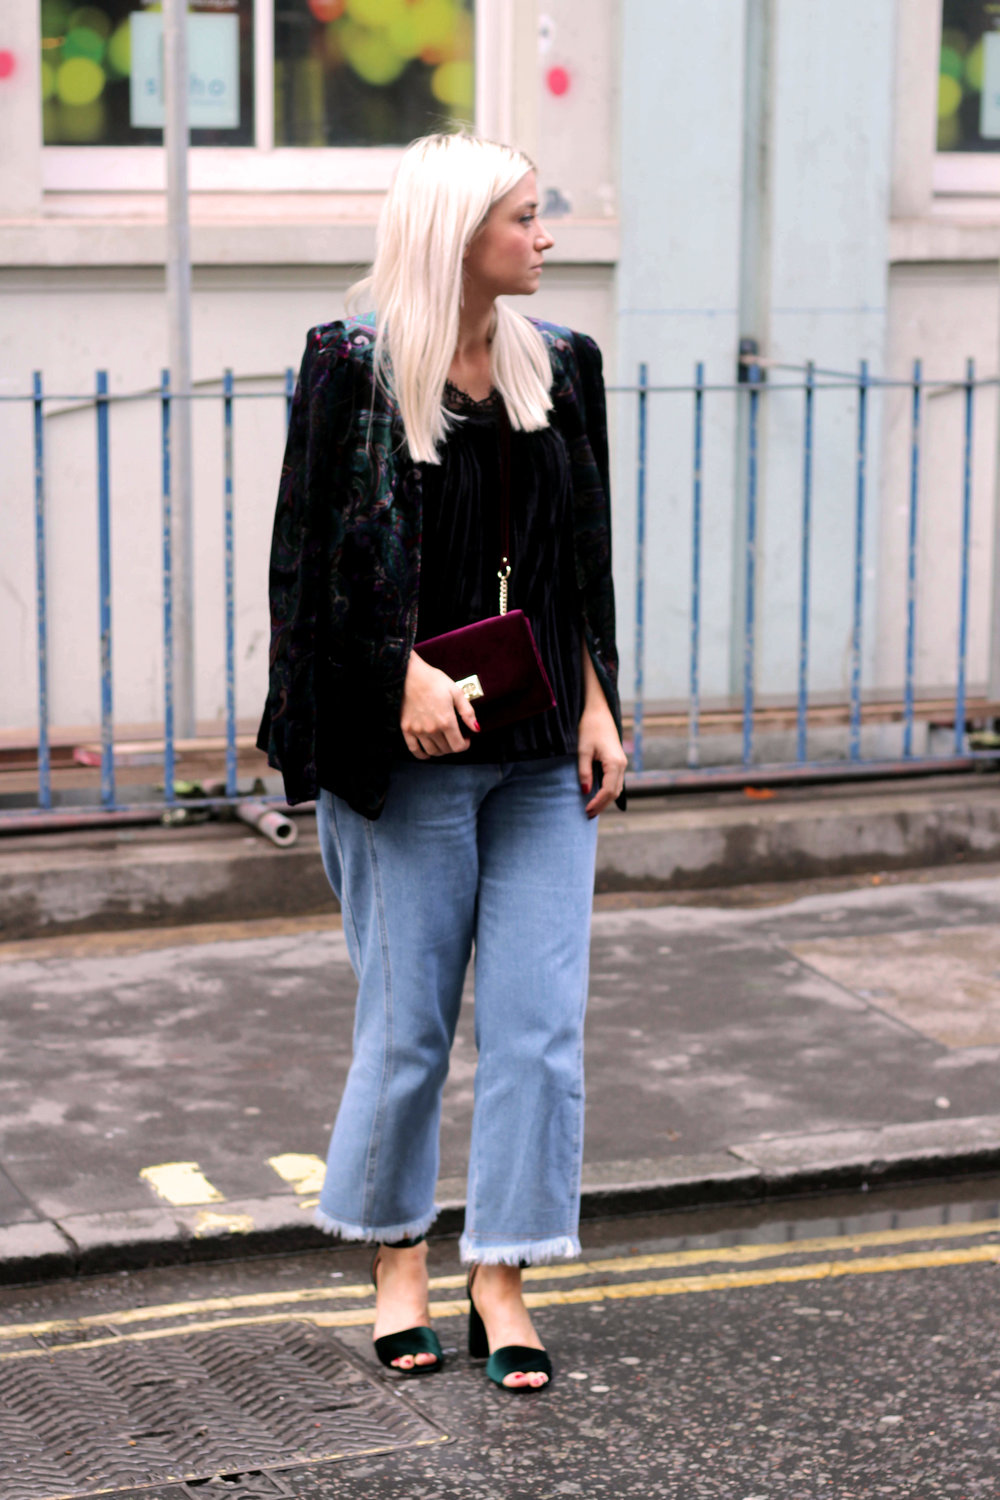 monsoon velvet collection, topshop jeans, chunky sandals, northern magpie, joey taylor 5